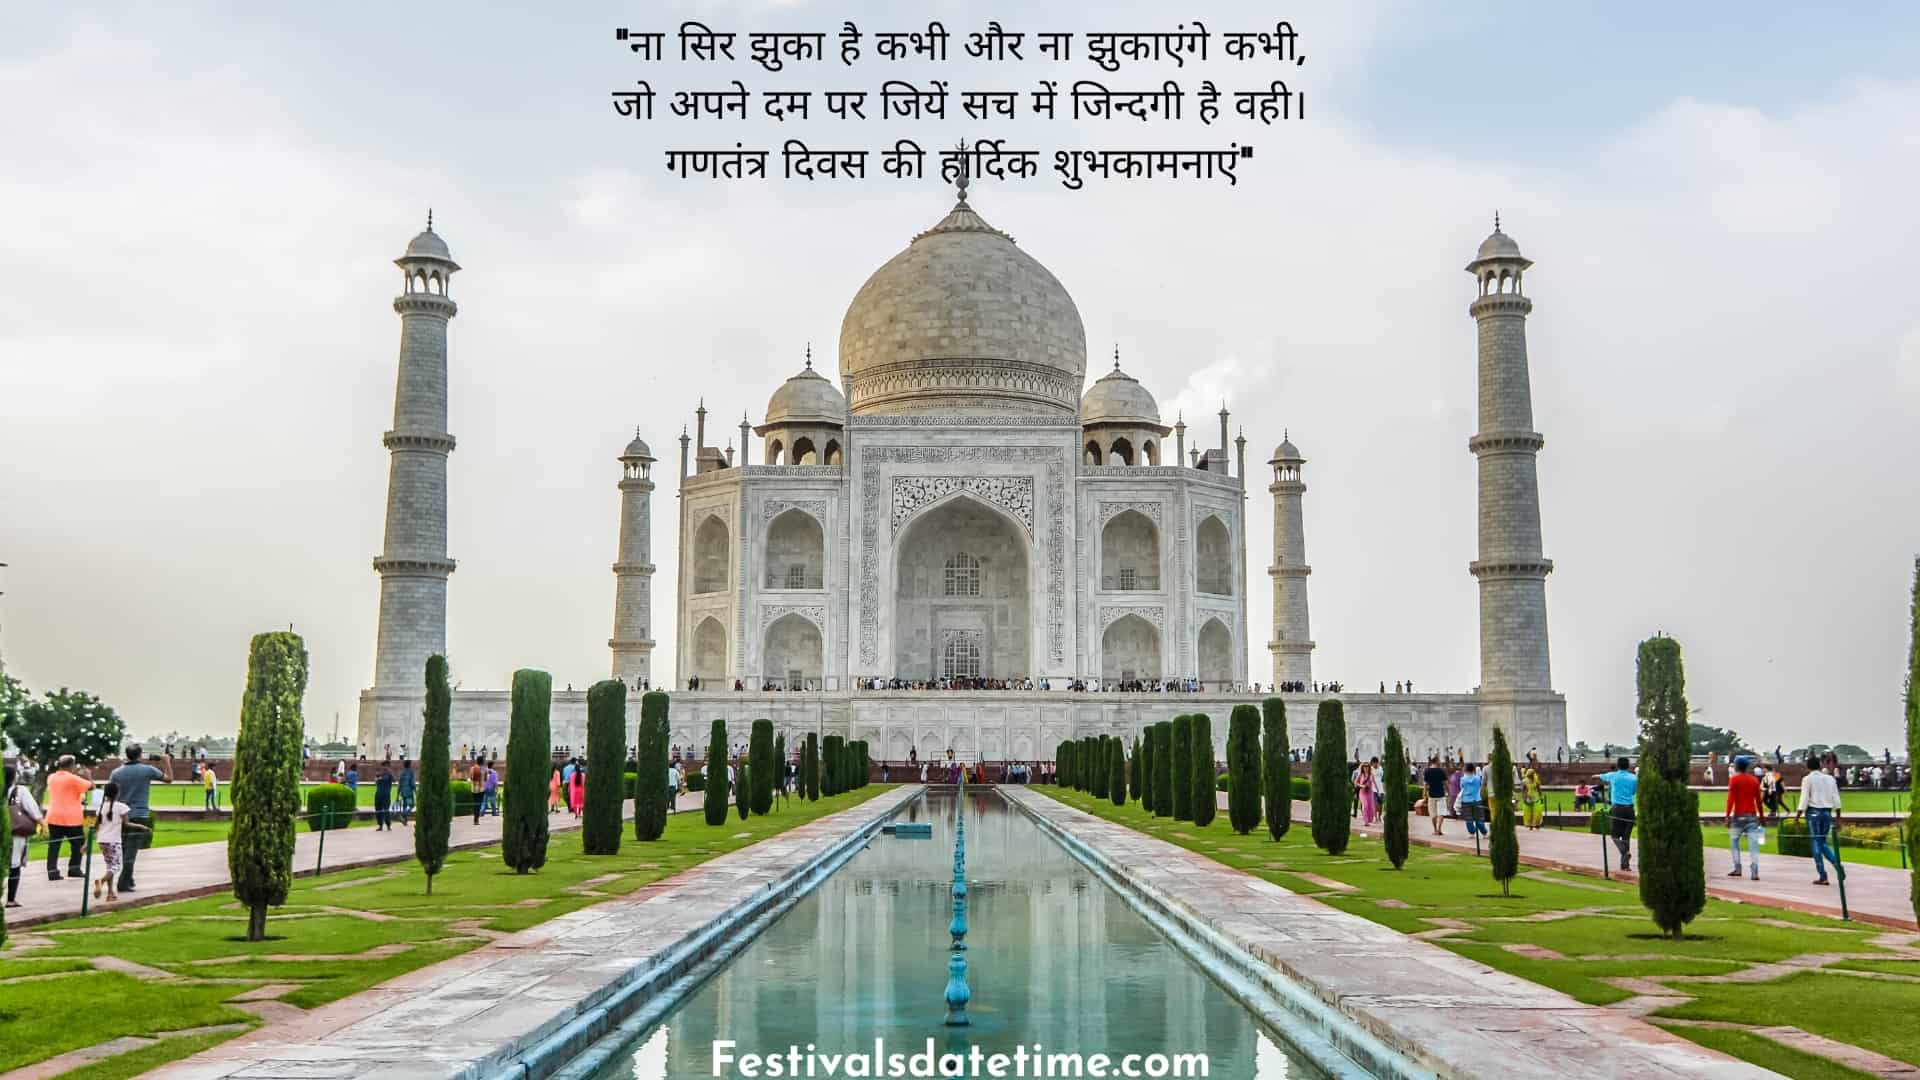 republic_day_quotes_in_hindi_images